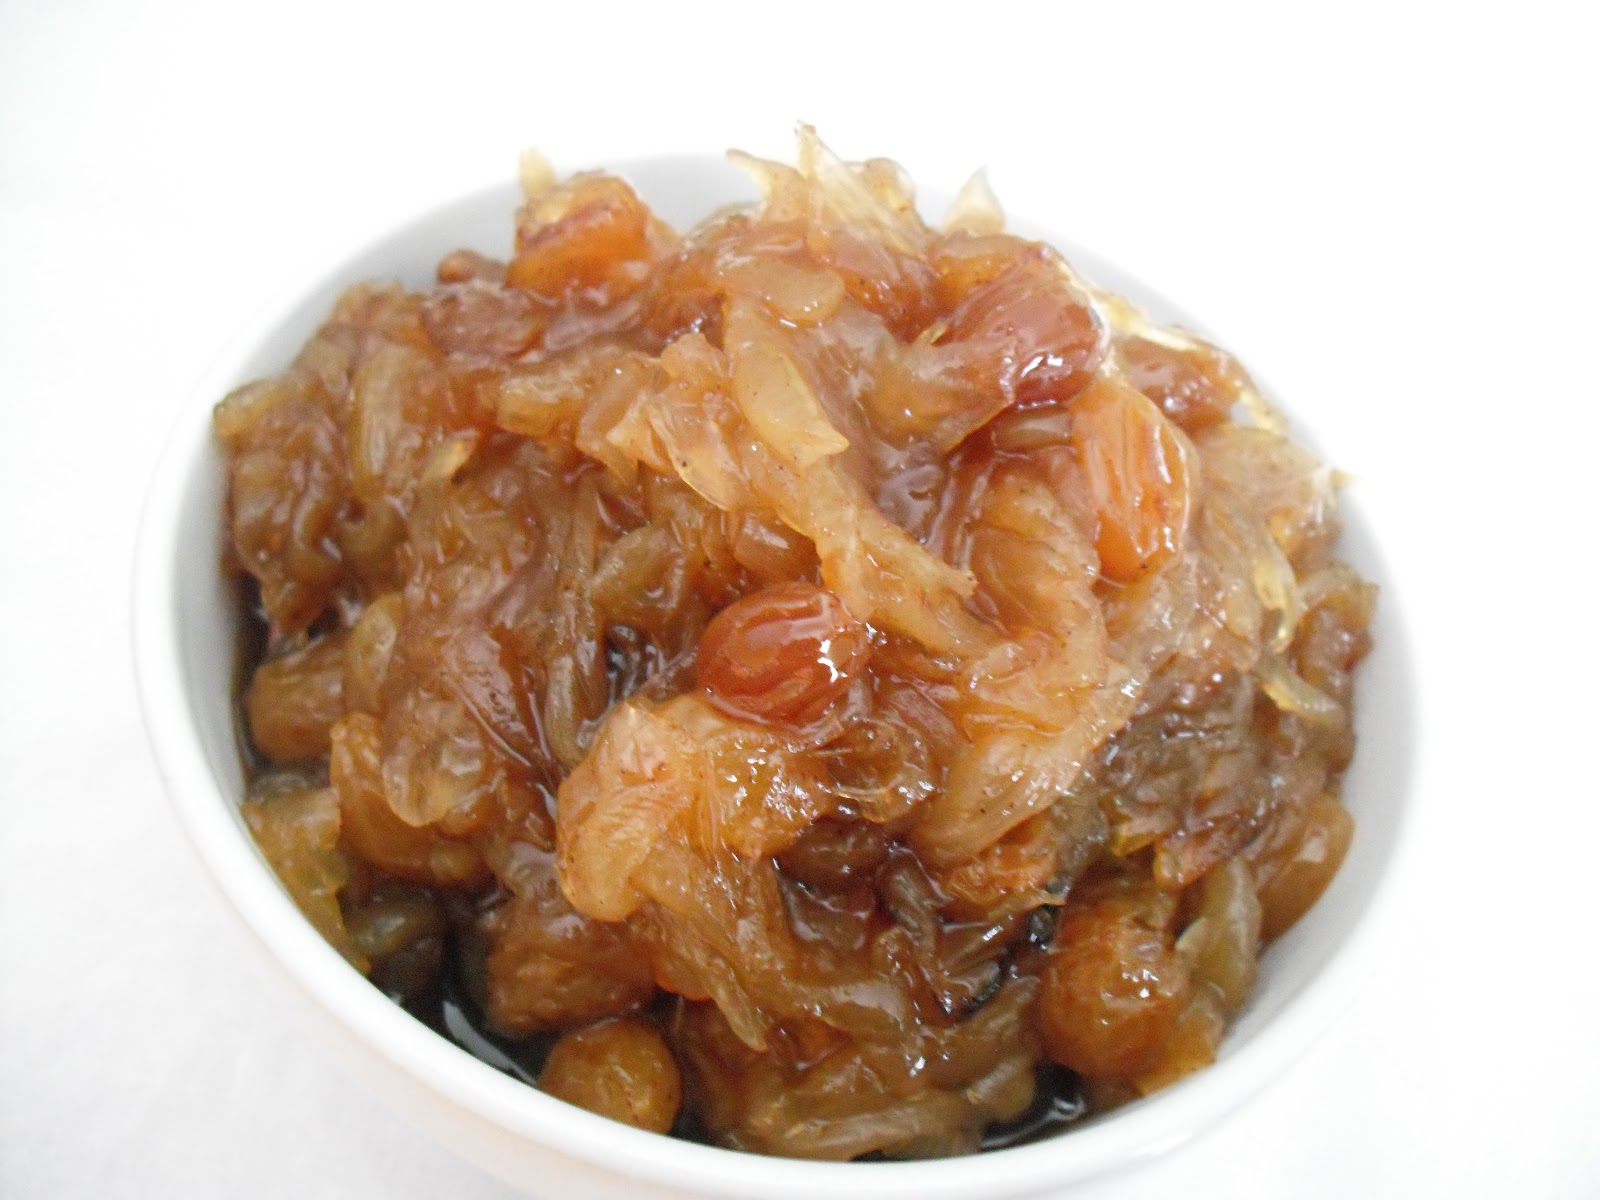 ... onion marmalade red onion marmalade onion marmalade is the red onion